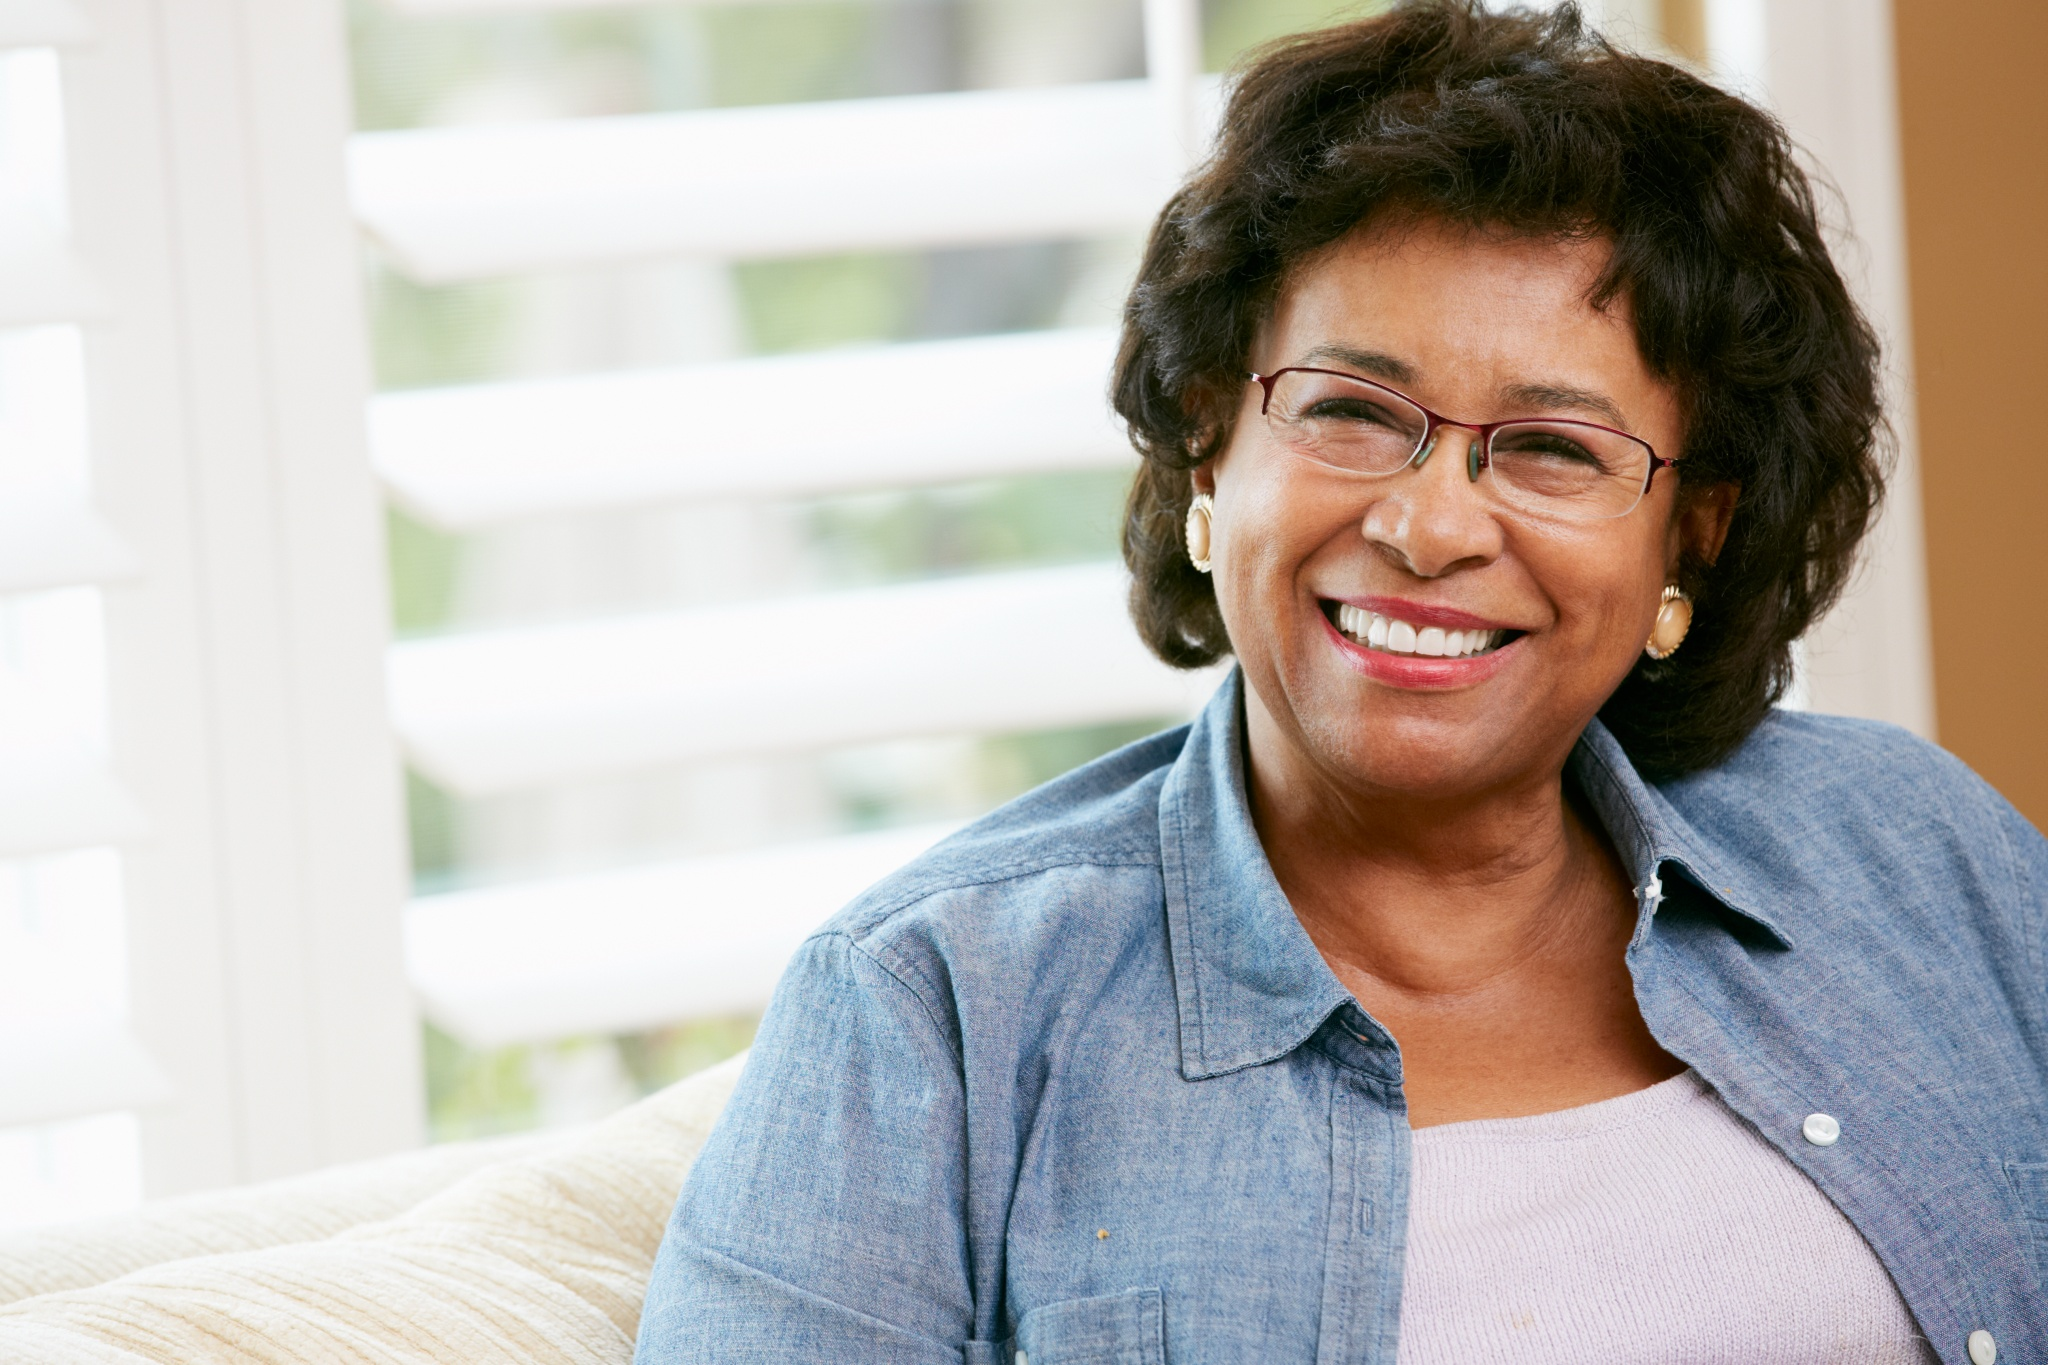 Portrait Of Happy Senior Woman At Home Looking At Camera Smiling